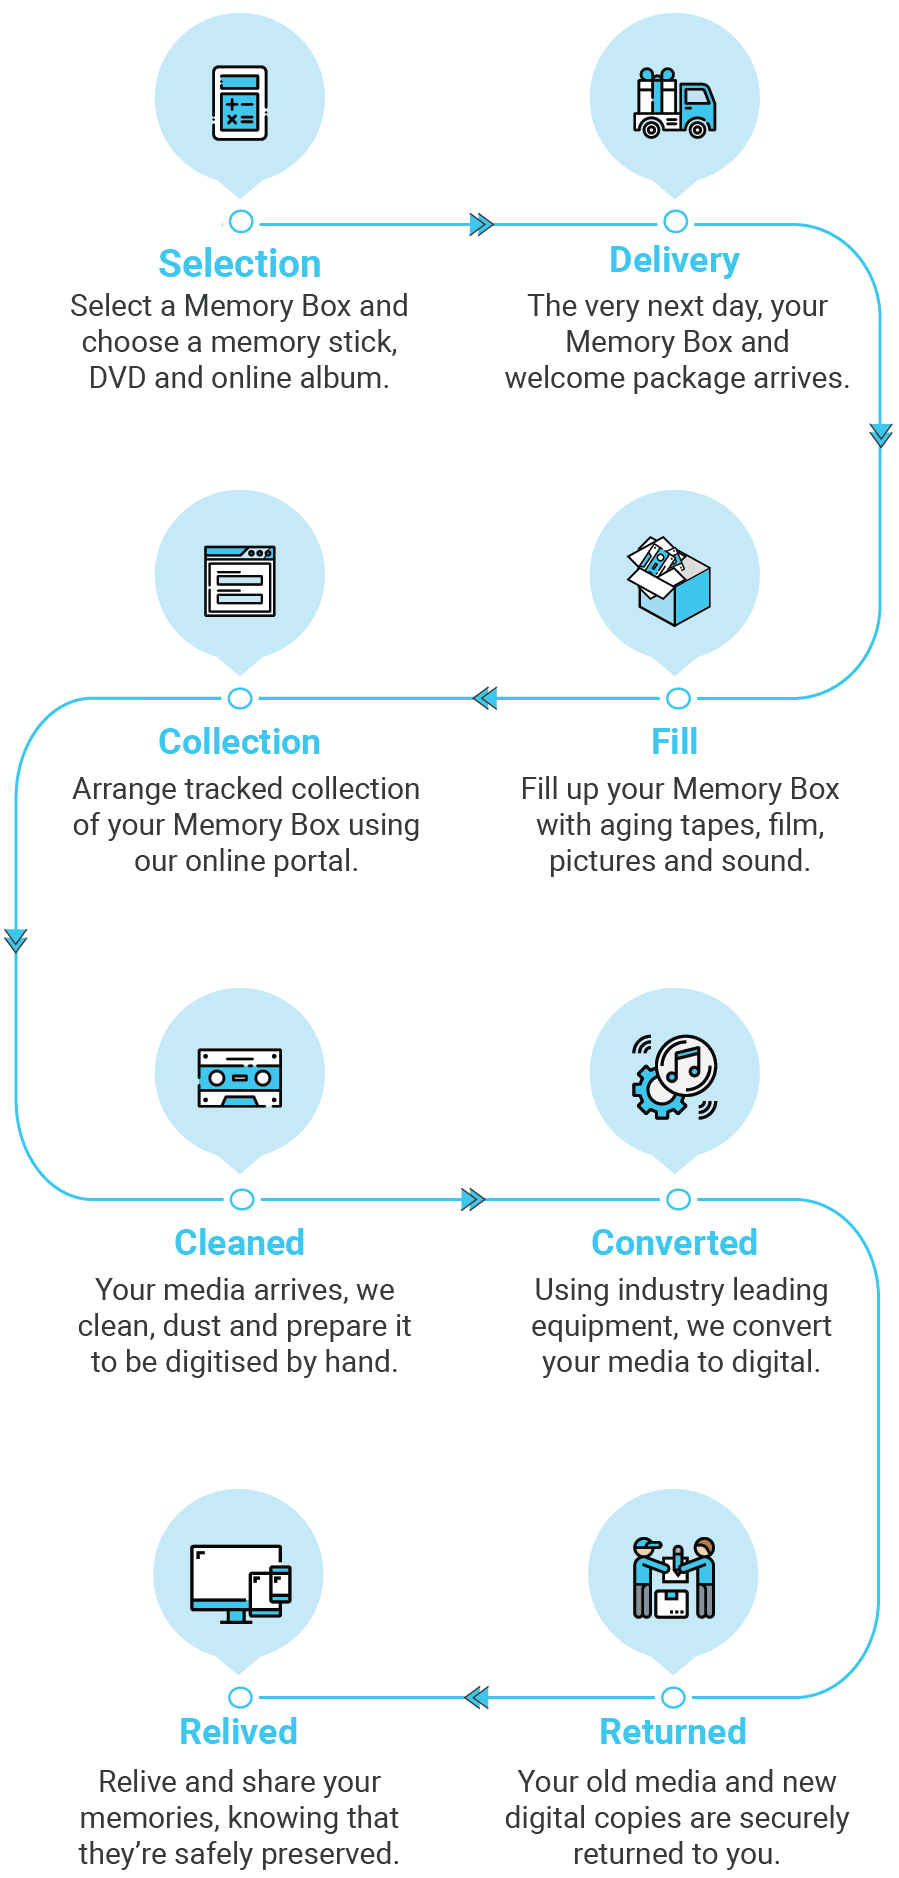 A step by step infographic showing how we convert tapes and pictures to dvd and digital